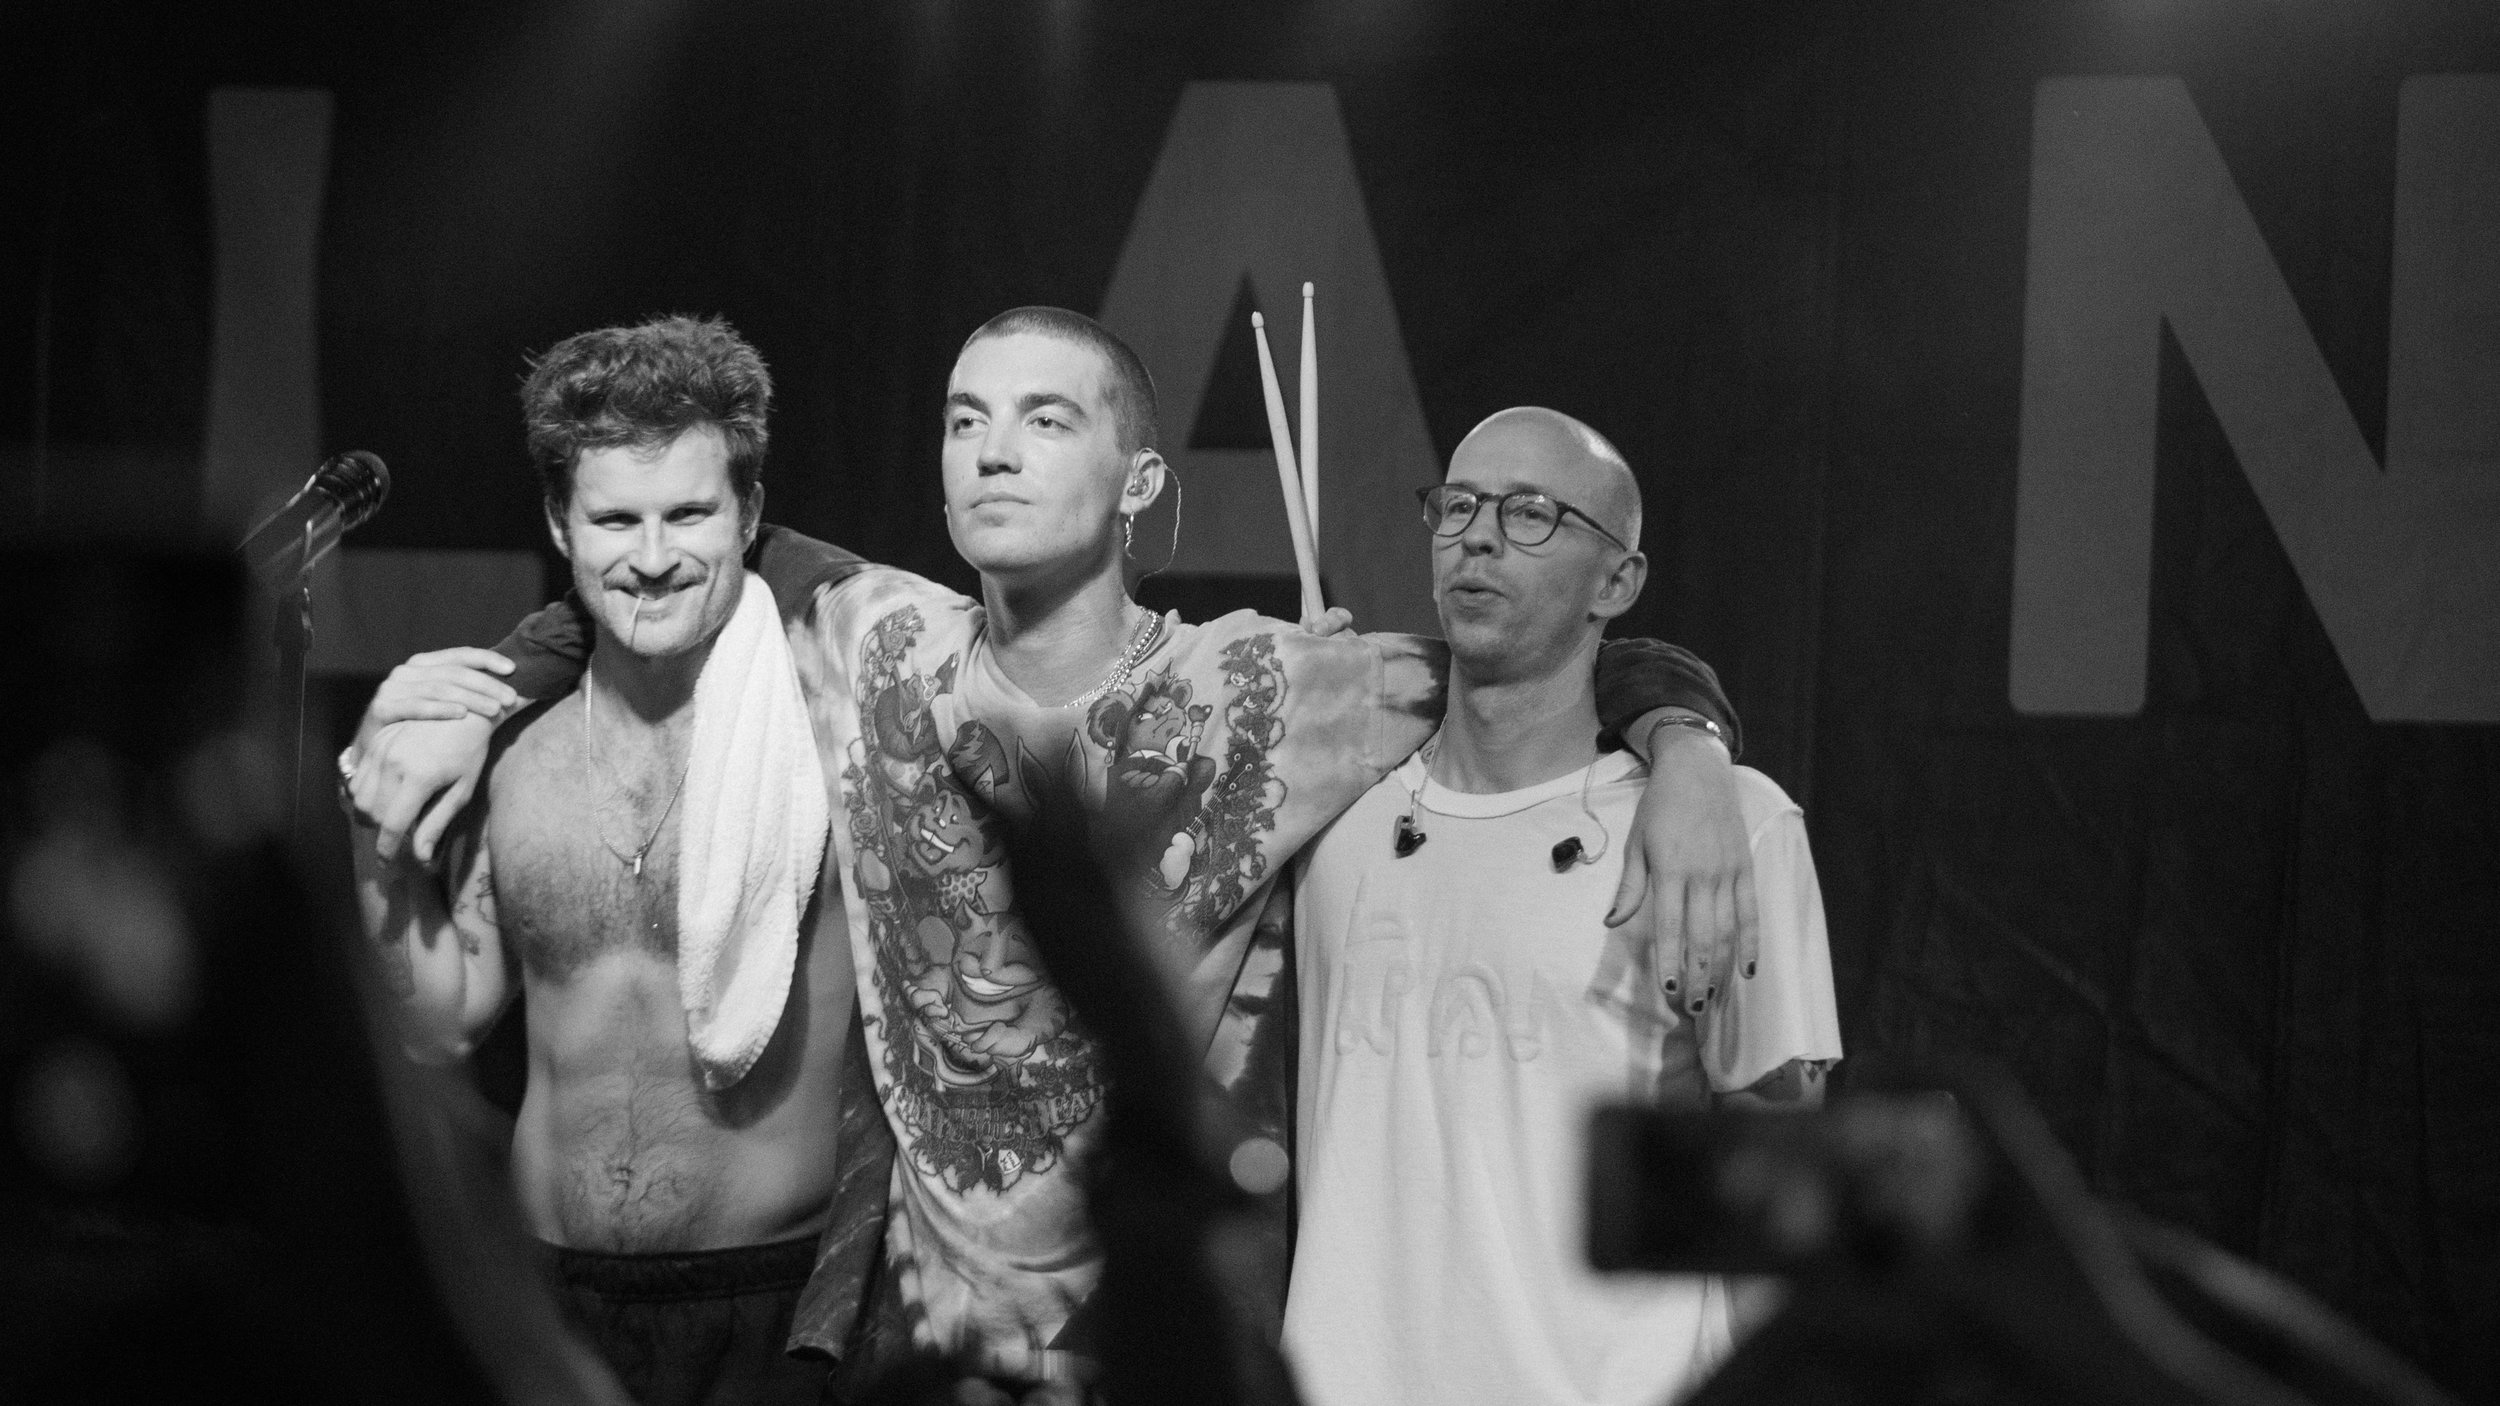 lany_chicago_08.01.18 (26 of 26).jpg